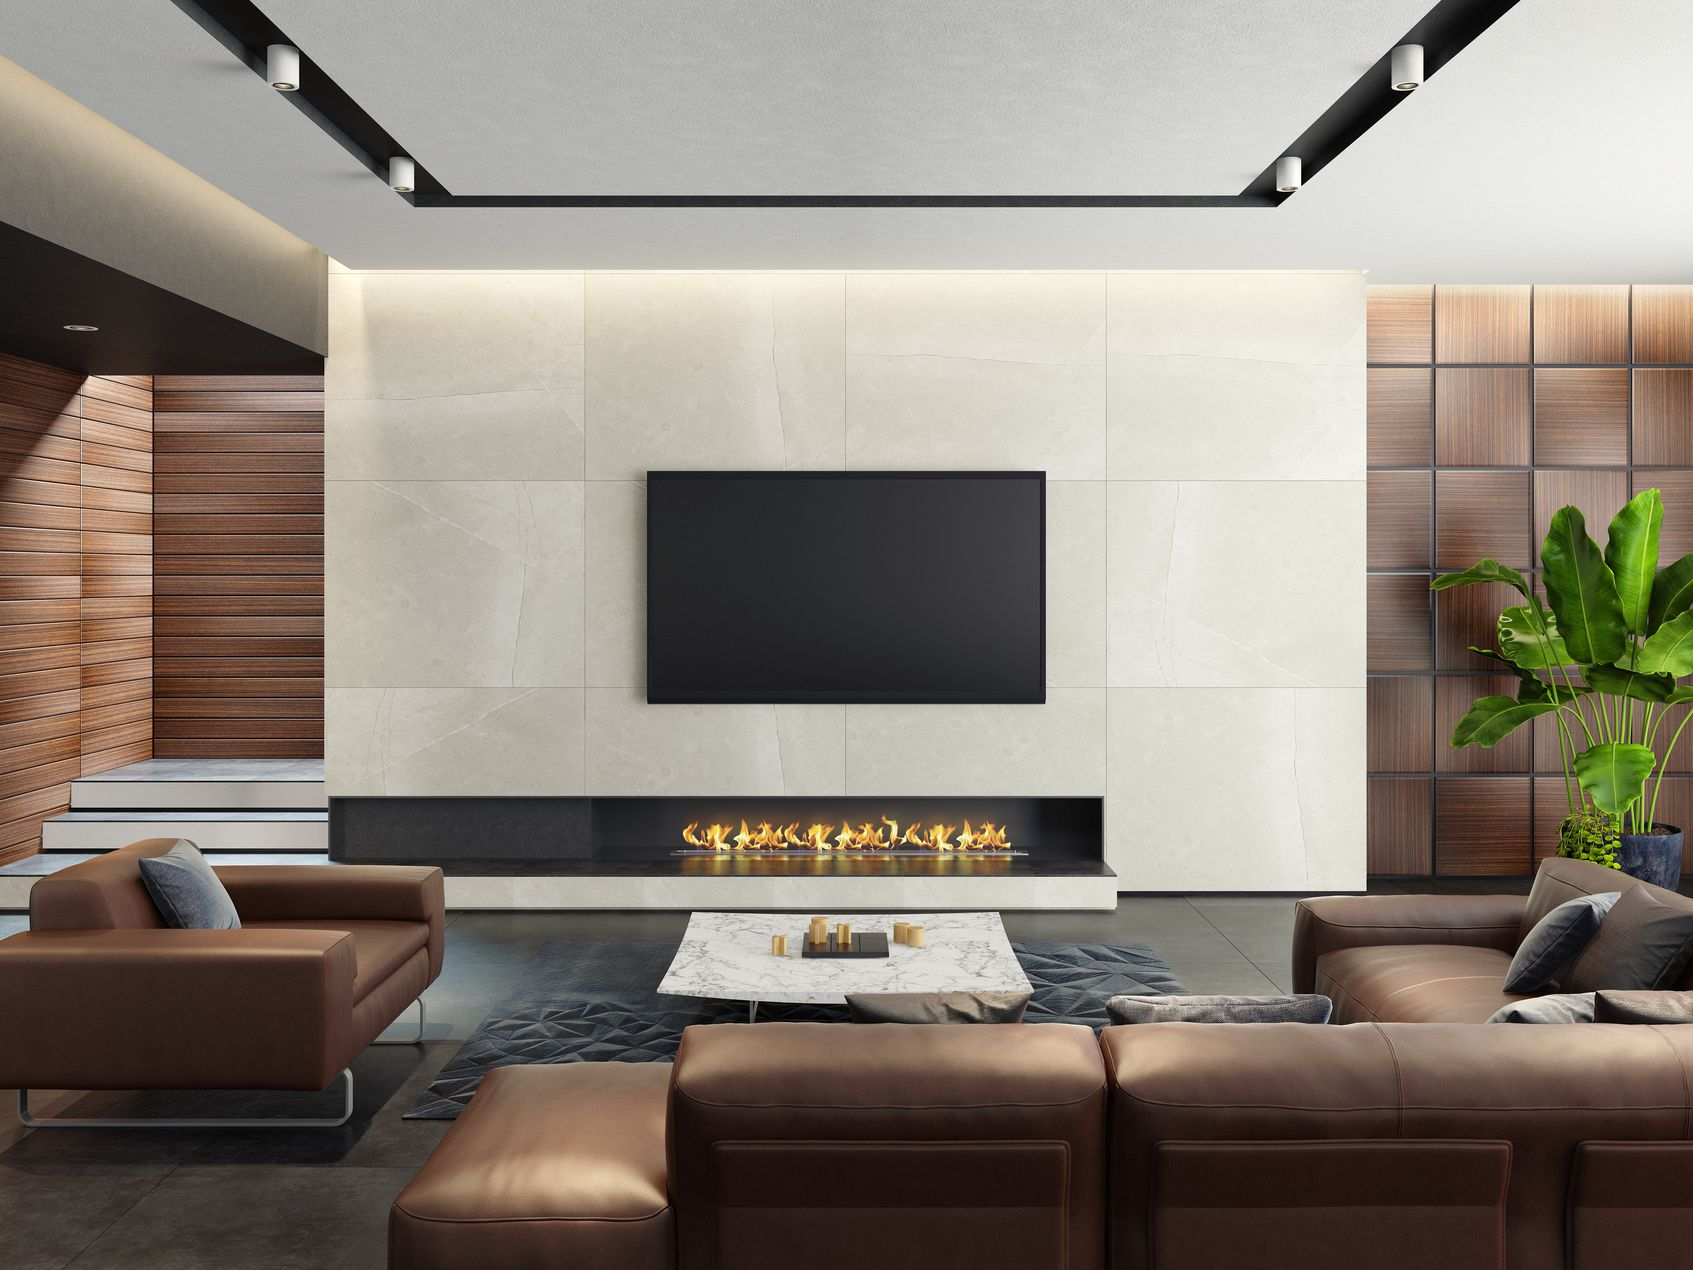 Should You Mount Your Tv Over Your Fireplace